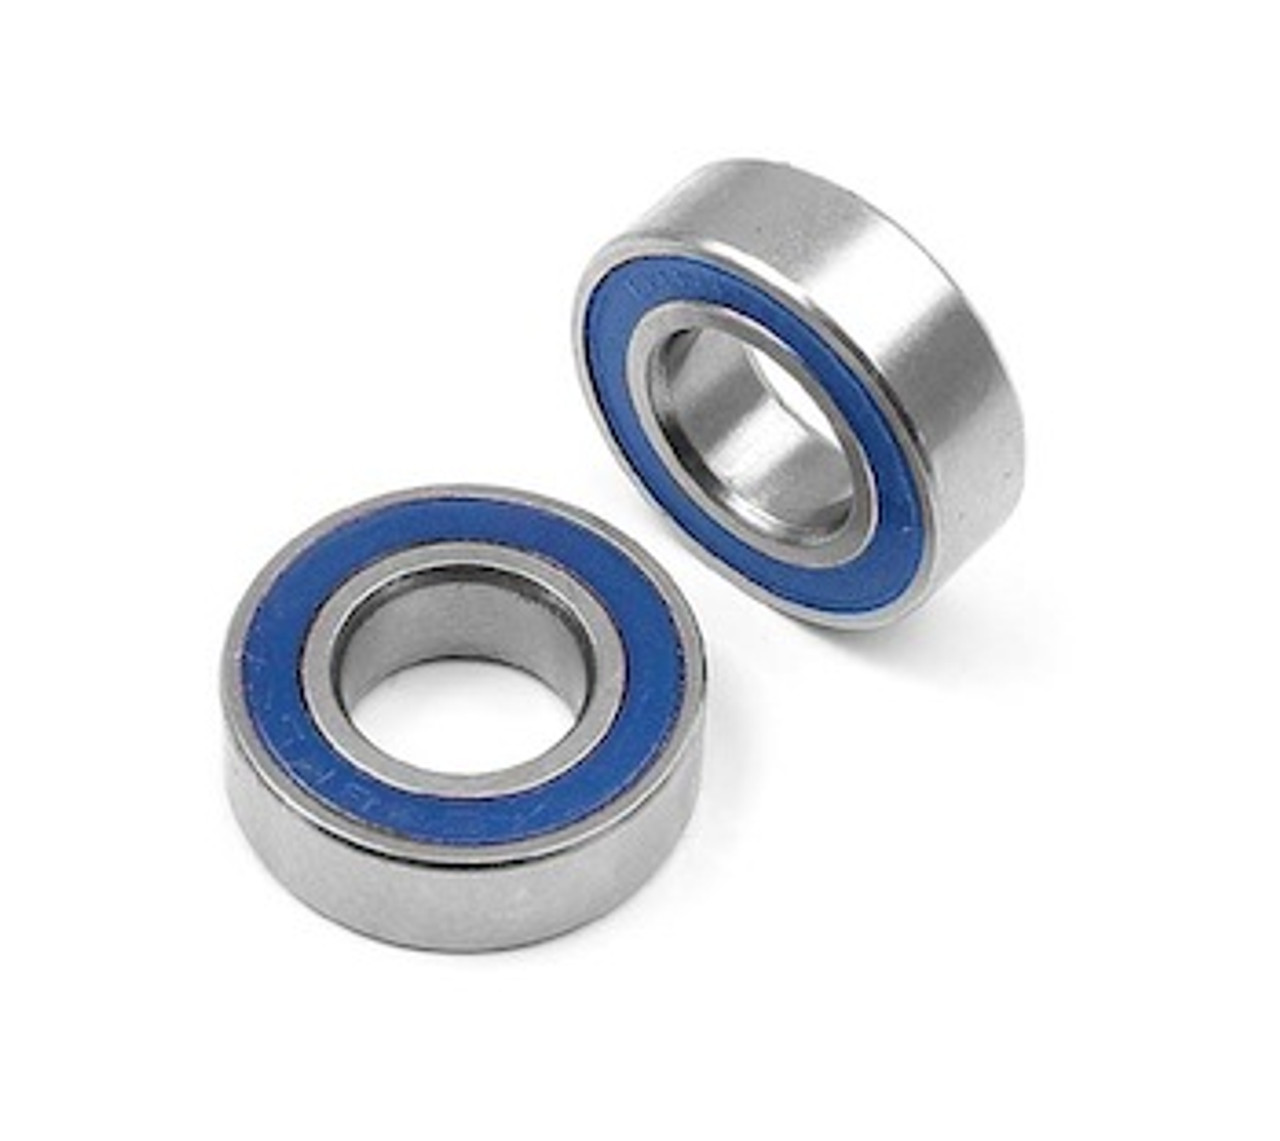 Bearings Metric 5x11x4 MM Rubber Sealed (2 Pack) (MR115 2RS)